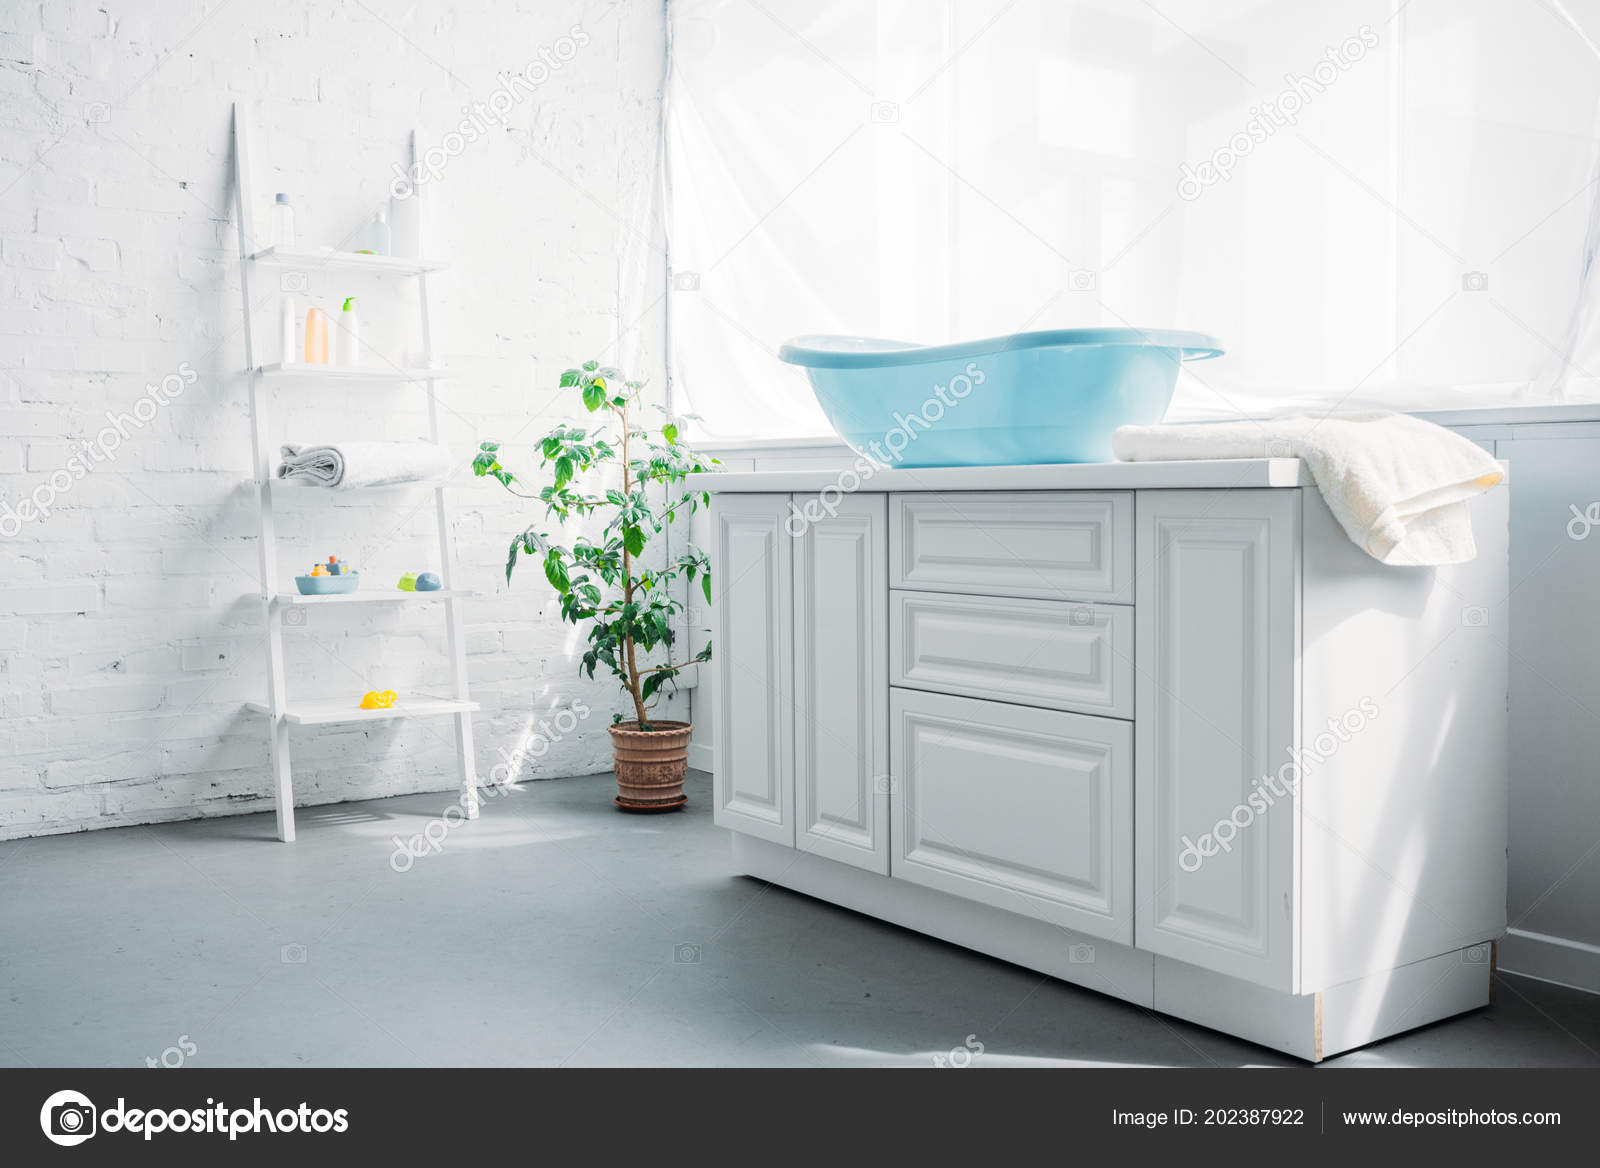 Blue Plastic Childrens Bathtub On Stand In White Modern Room U2014 Photo By  AndrewLozovyi